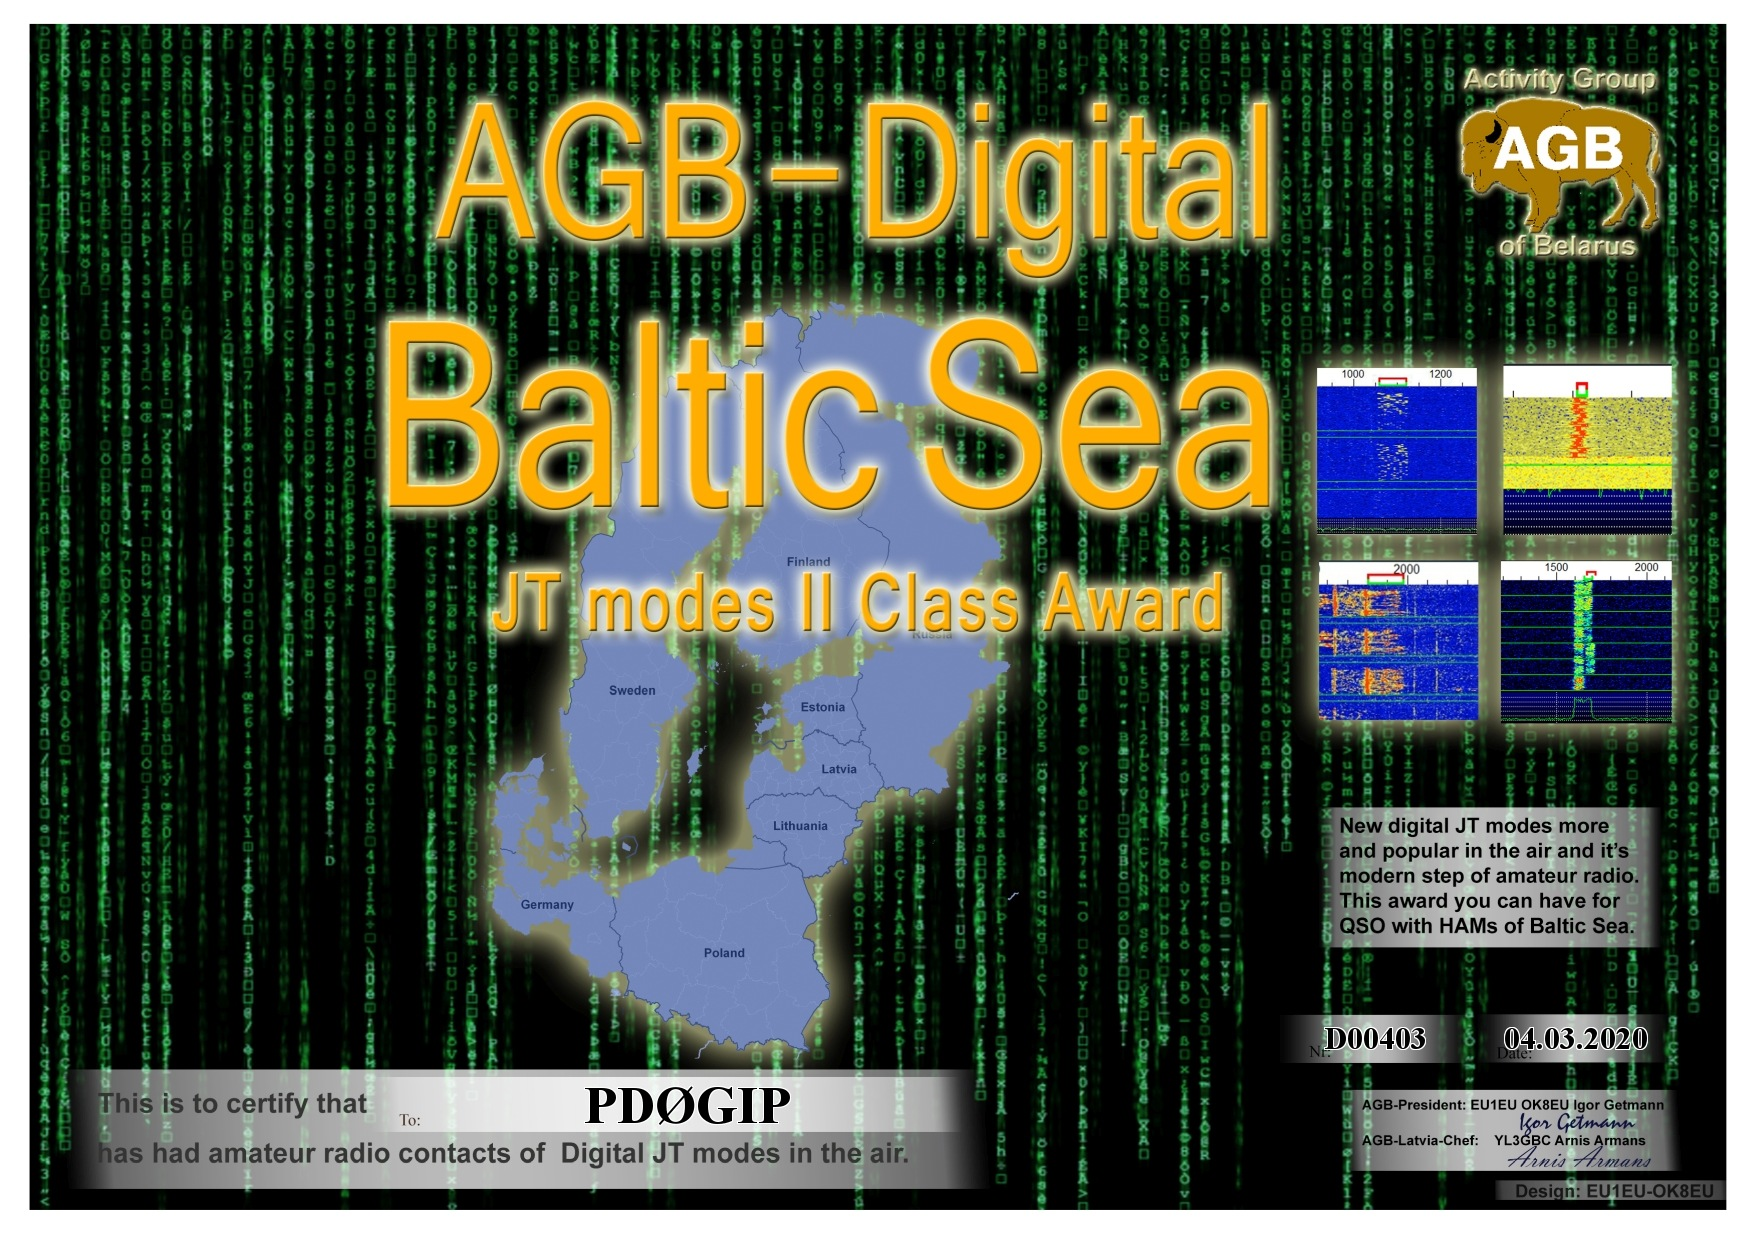 PD0GIP BALTICSEA BASIC II AGB